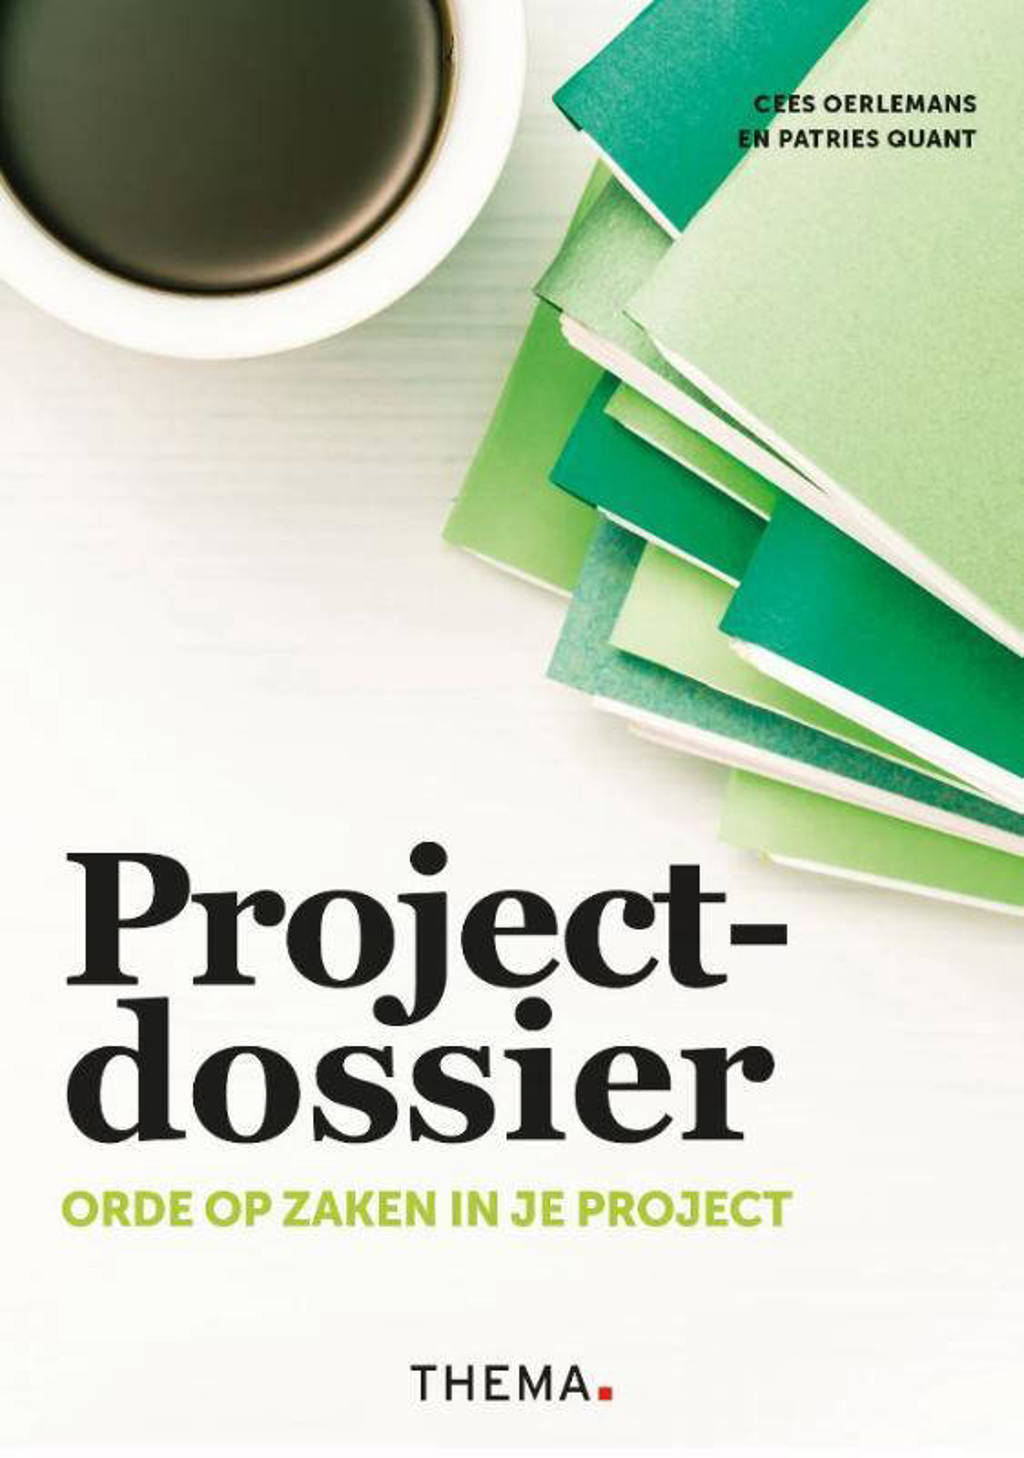 Projectdossier - Cees Oerlemans en Patries Quant